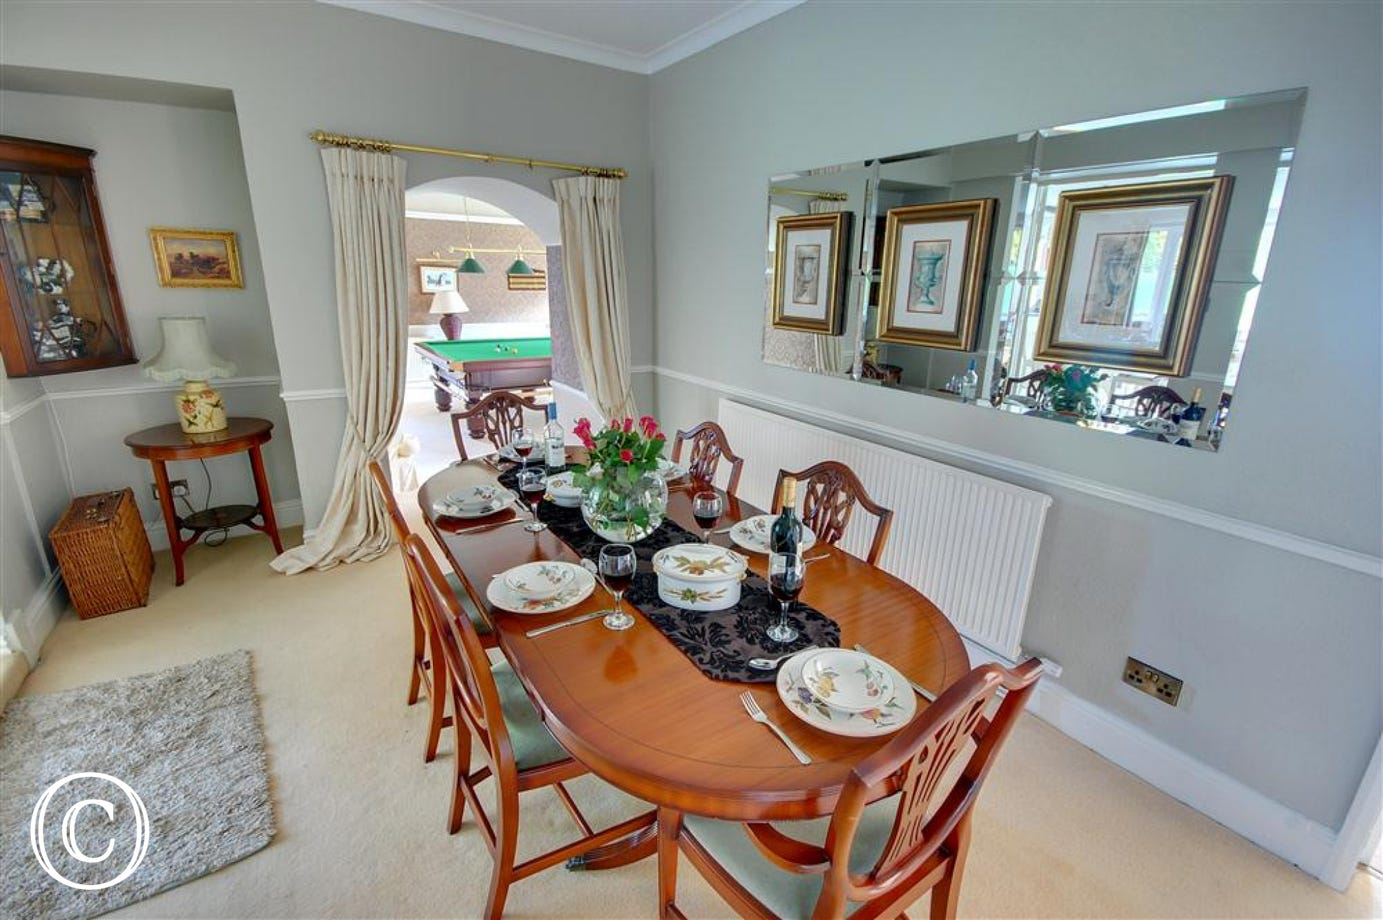 Spacious Dining Room in the centre of the household. This room leads to the Kitchen, Games Room and Lounge.